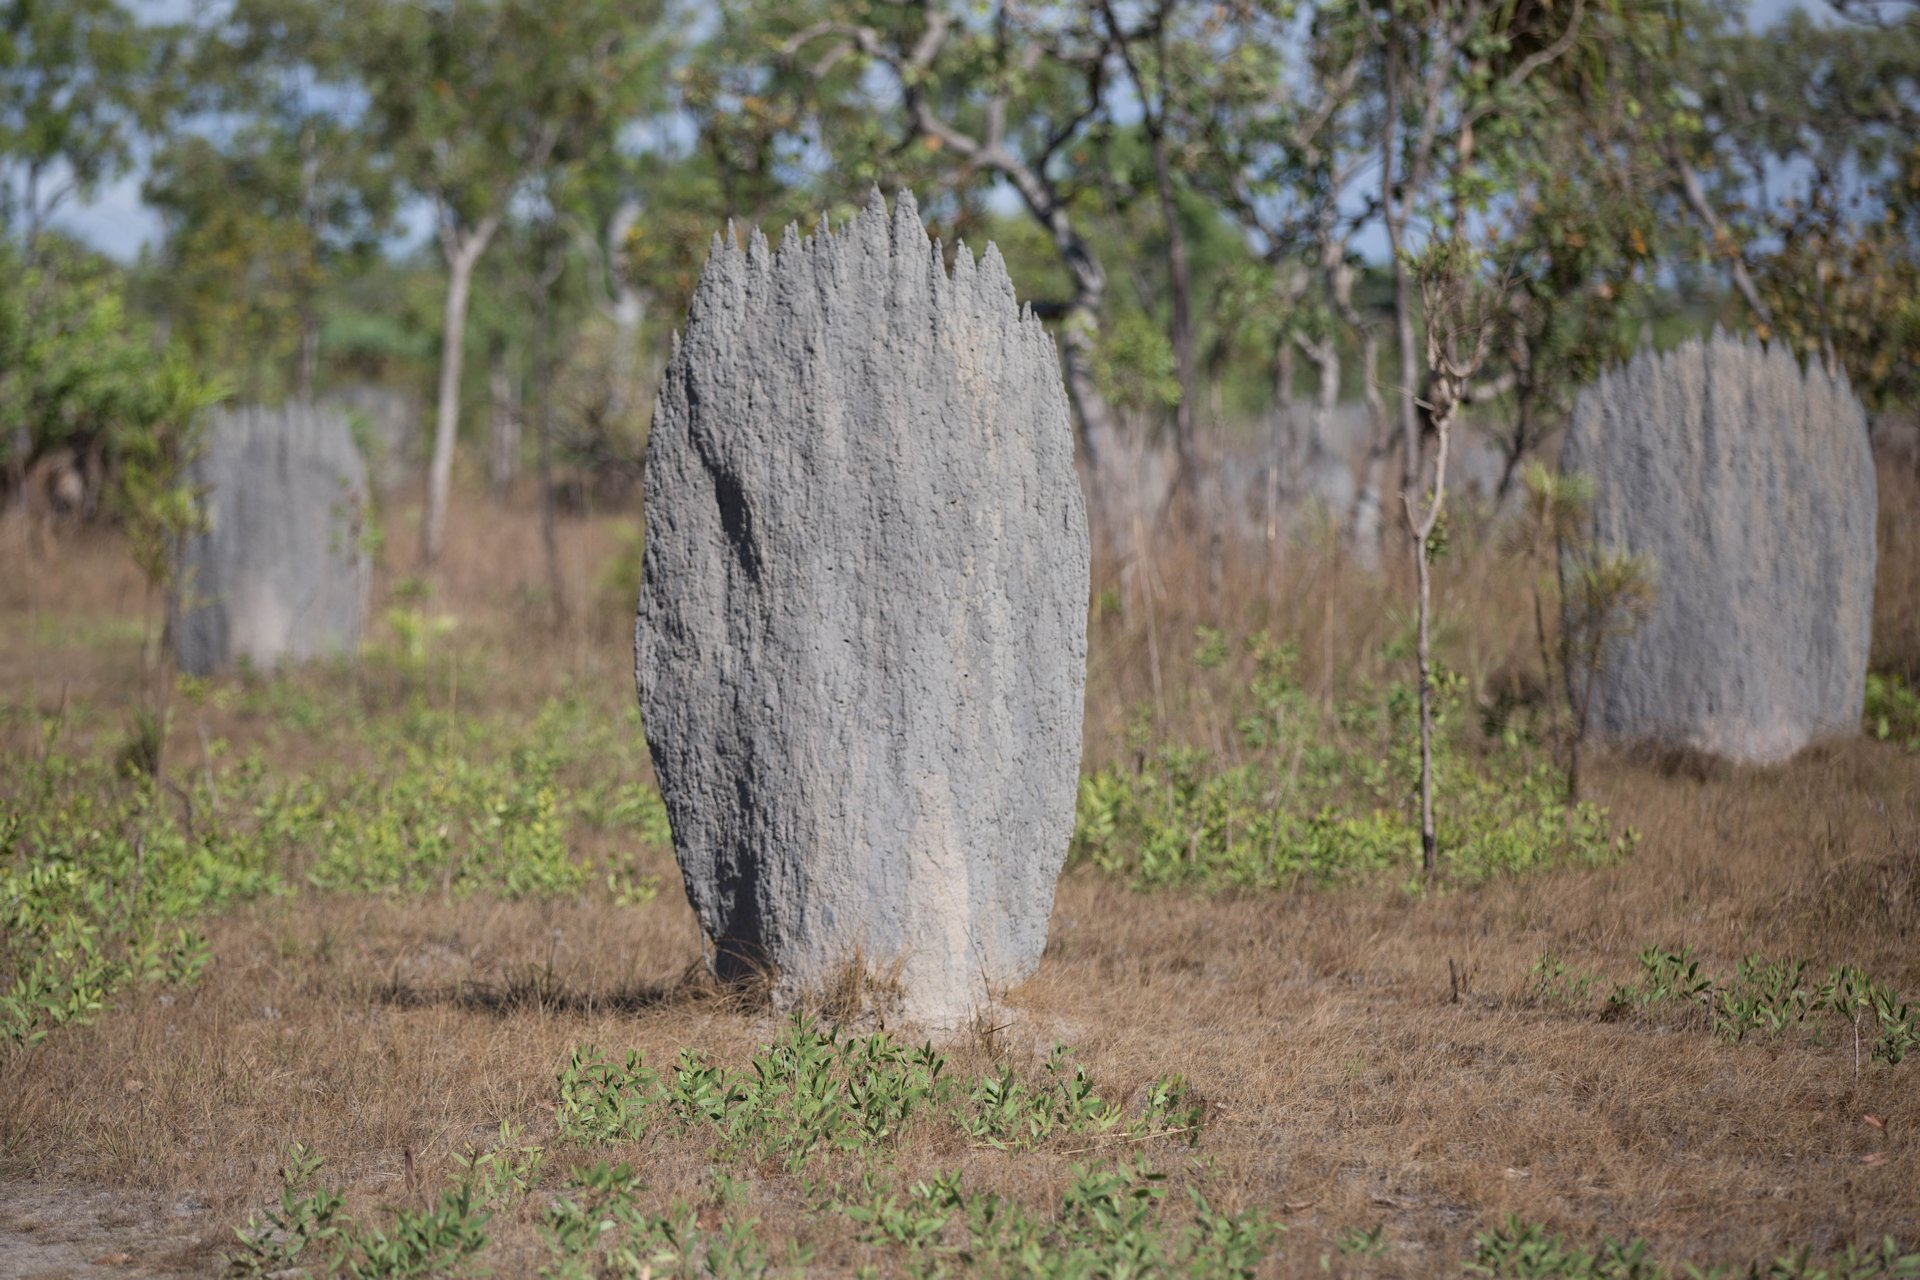 Magnetic Termite Mounds, Litchfield NP